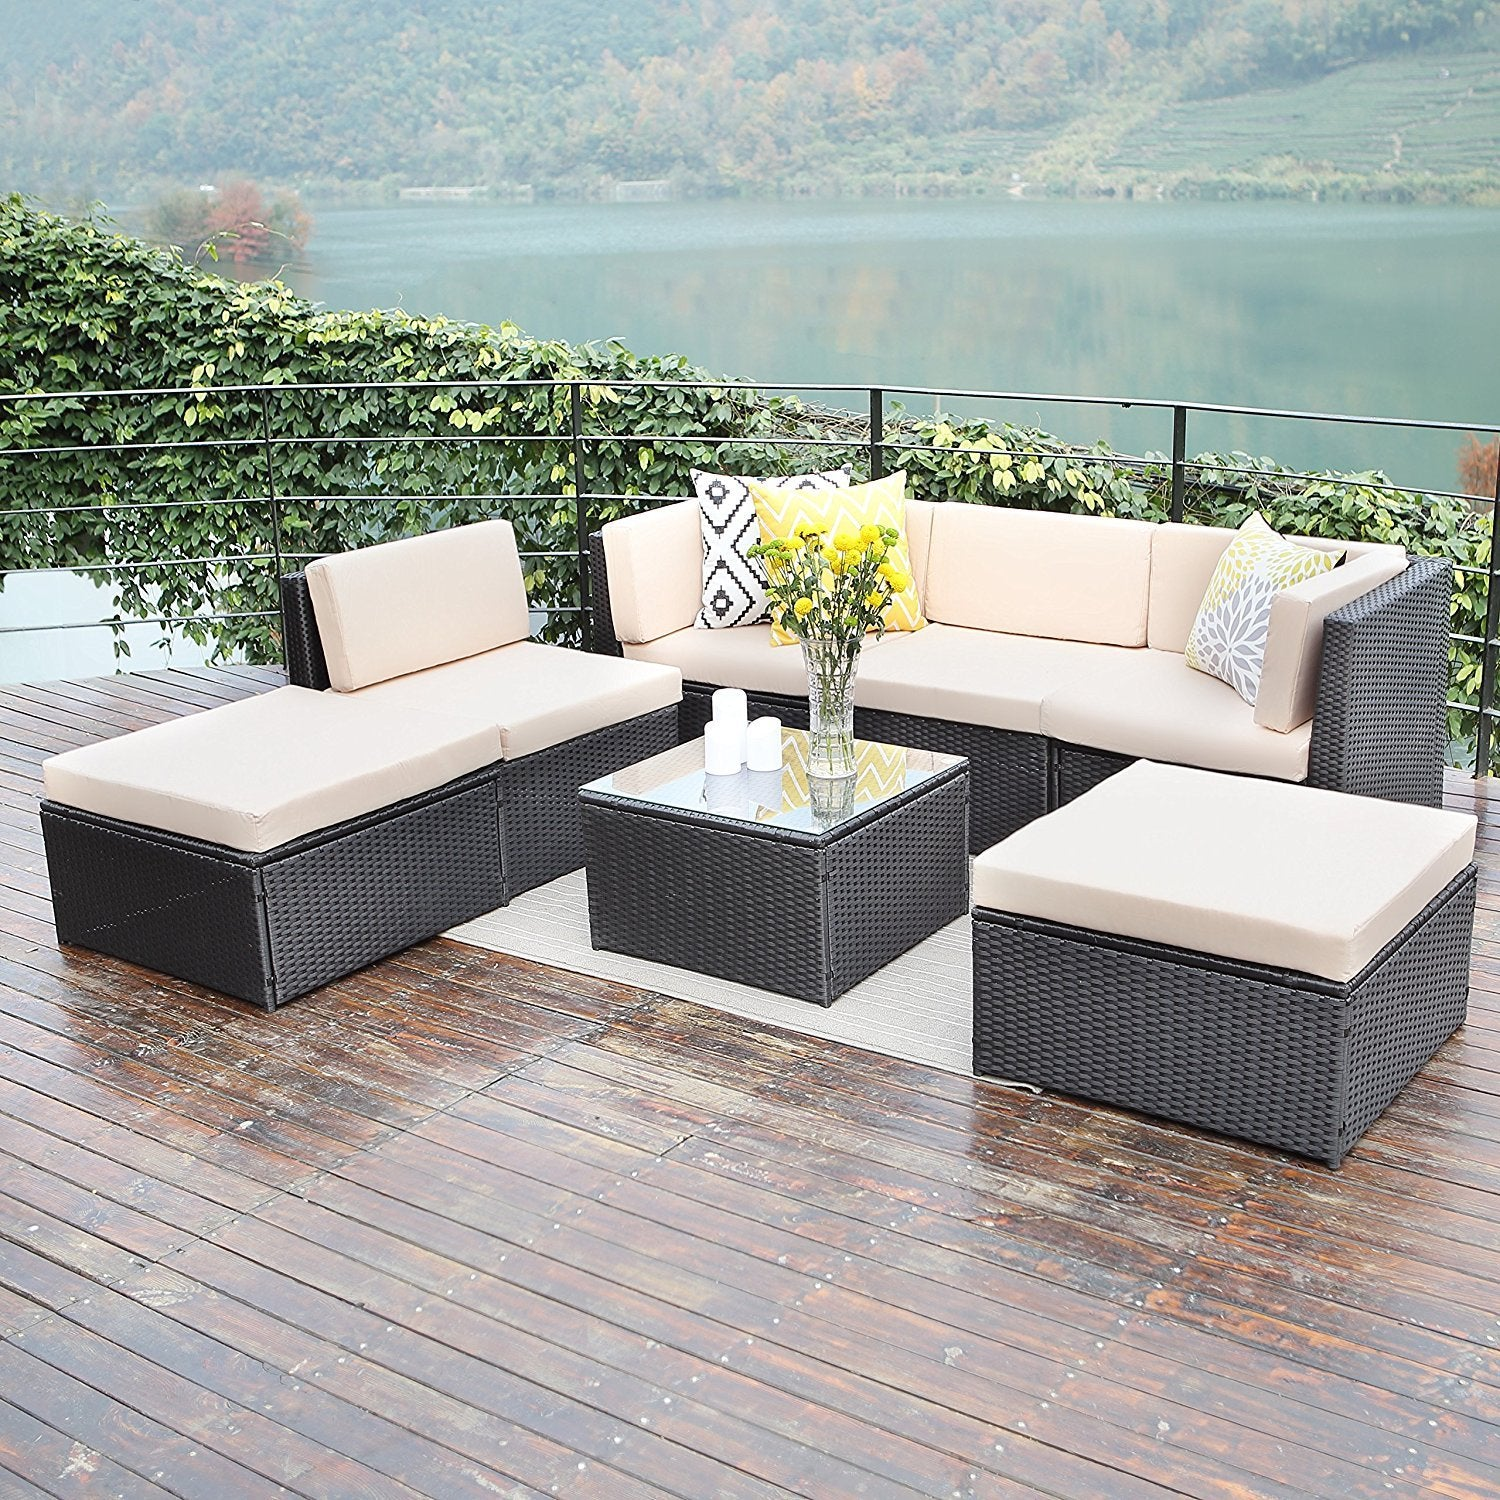 Vakker Outdoor Patio Furniture Sets,Wisteria Lane 7 Pc Wicker Sofa